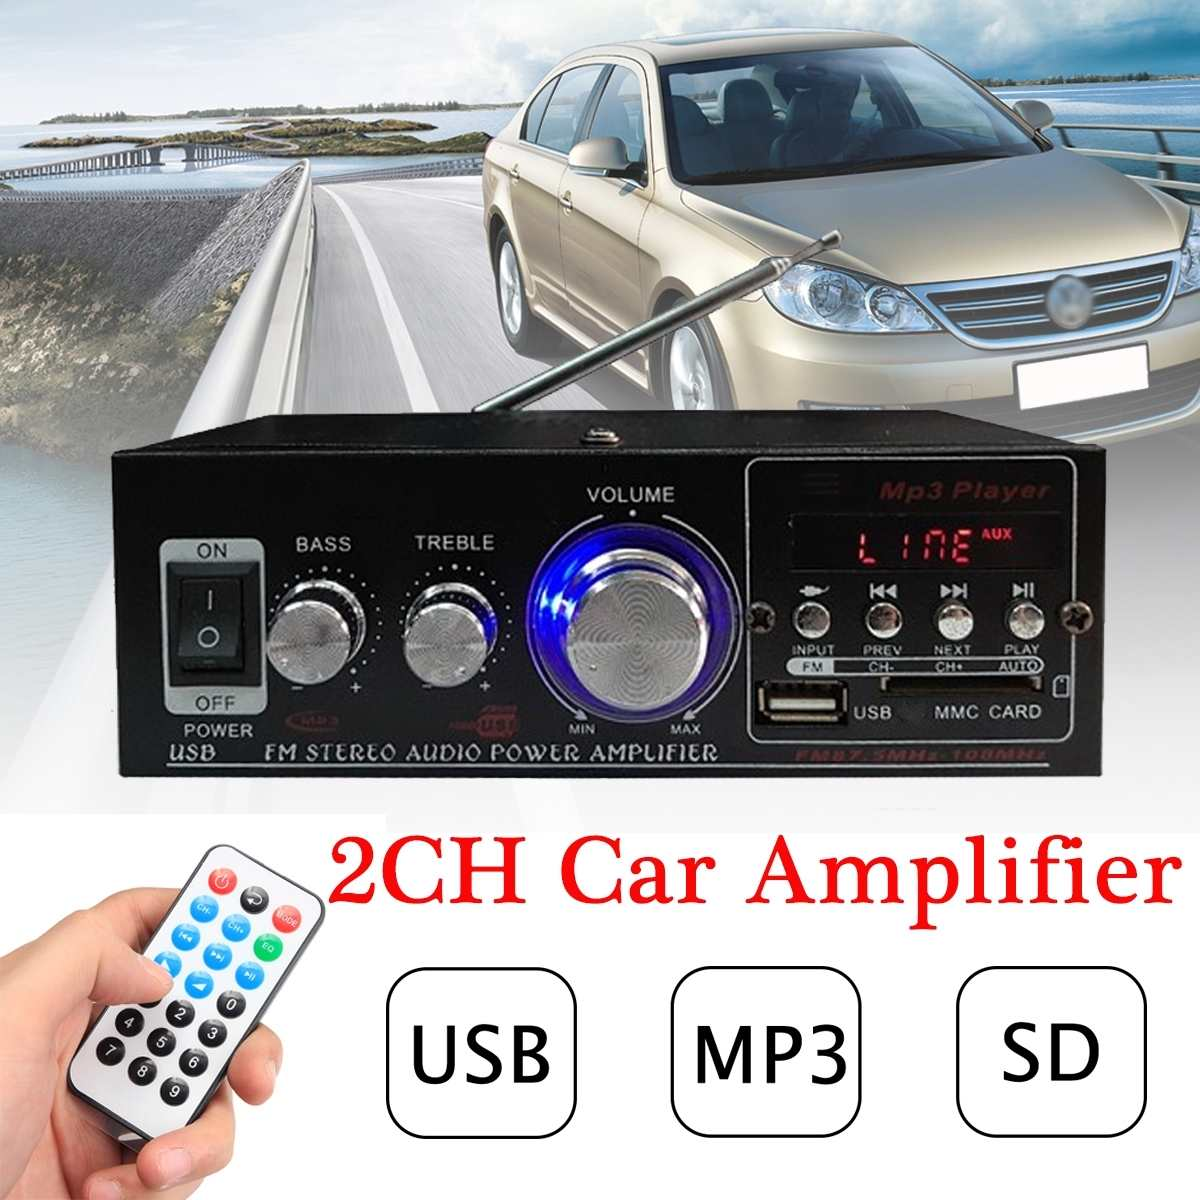 Digital Car Amplifier Stereo With USB Output Home Audio Ampl